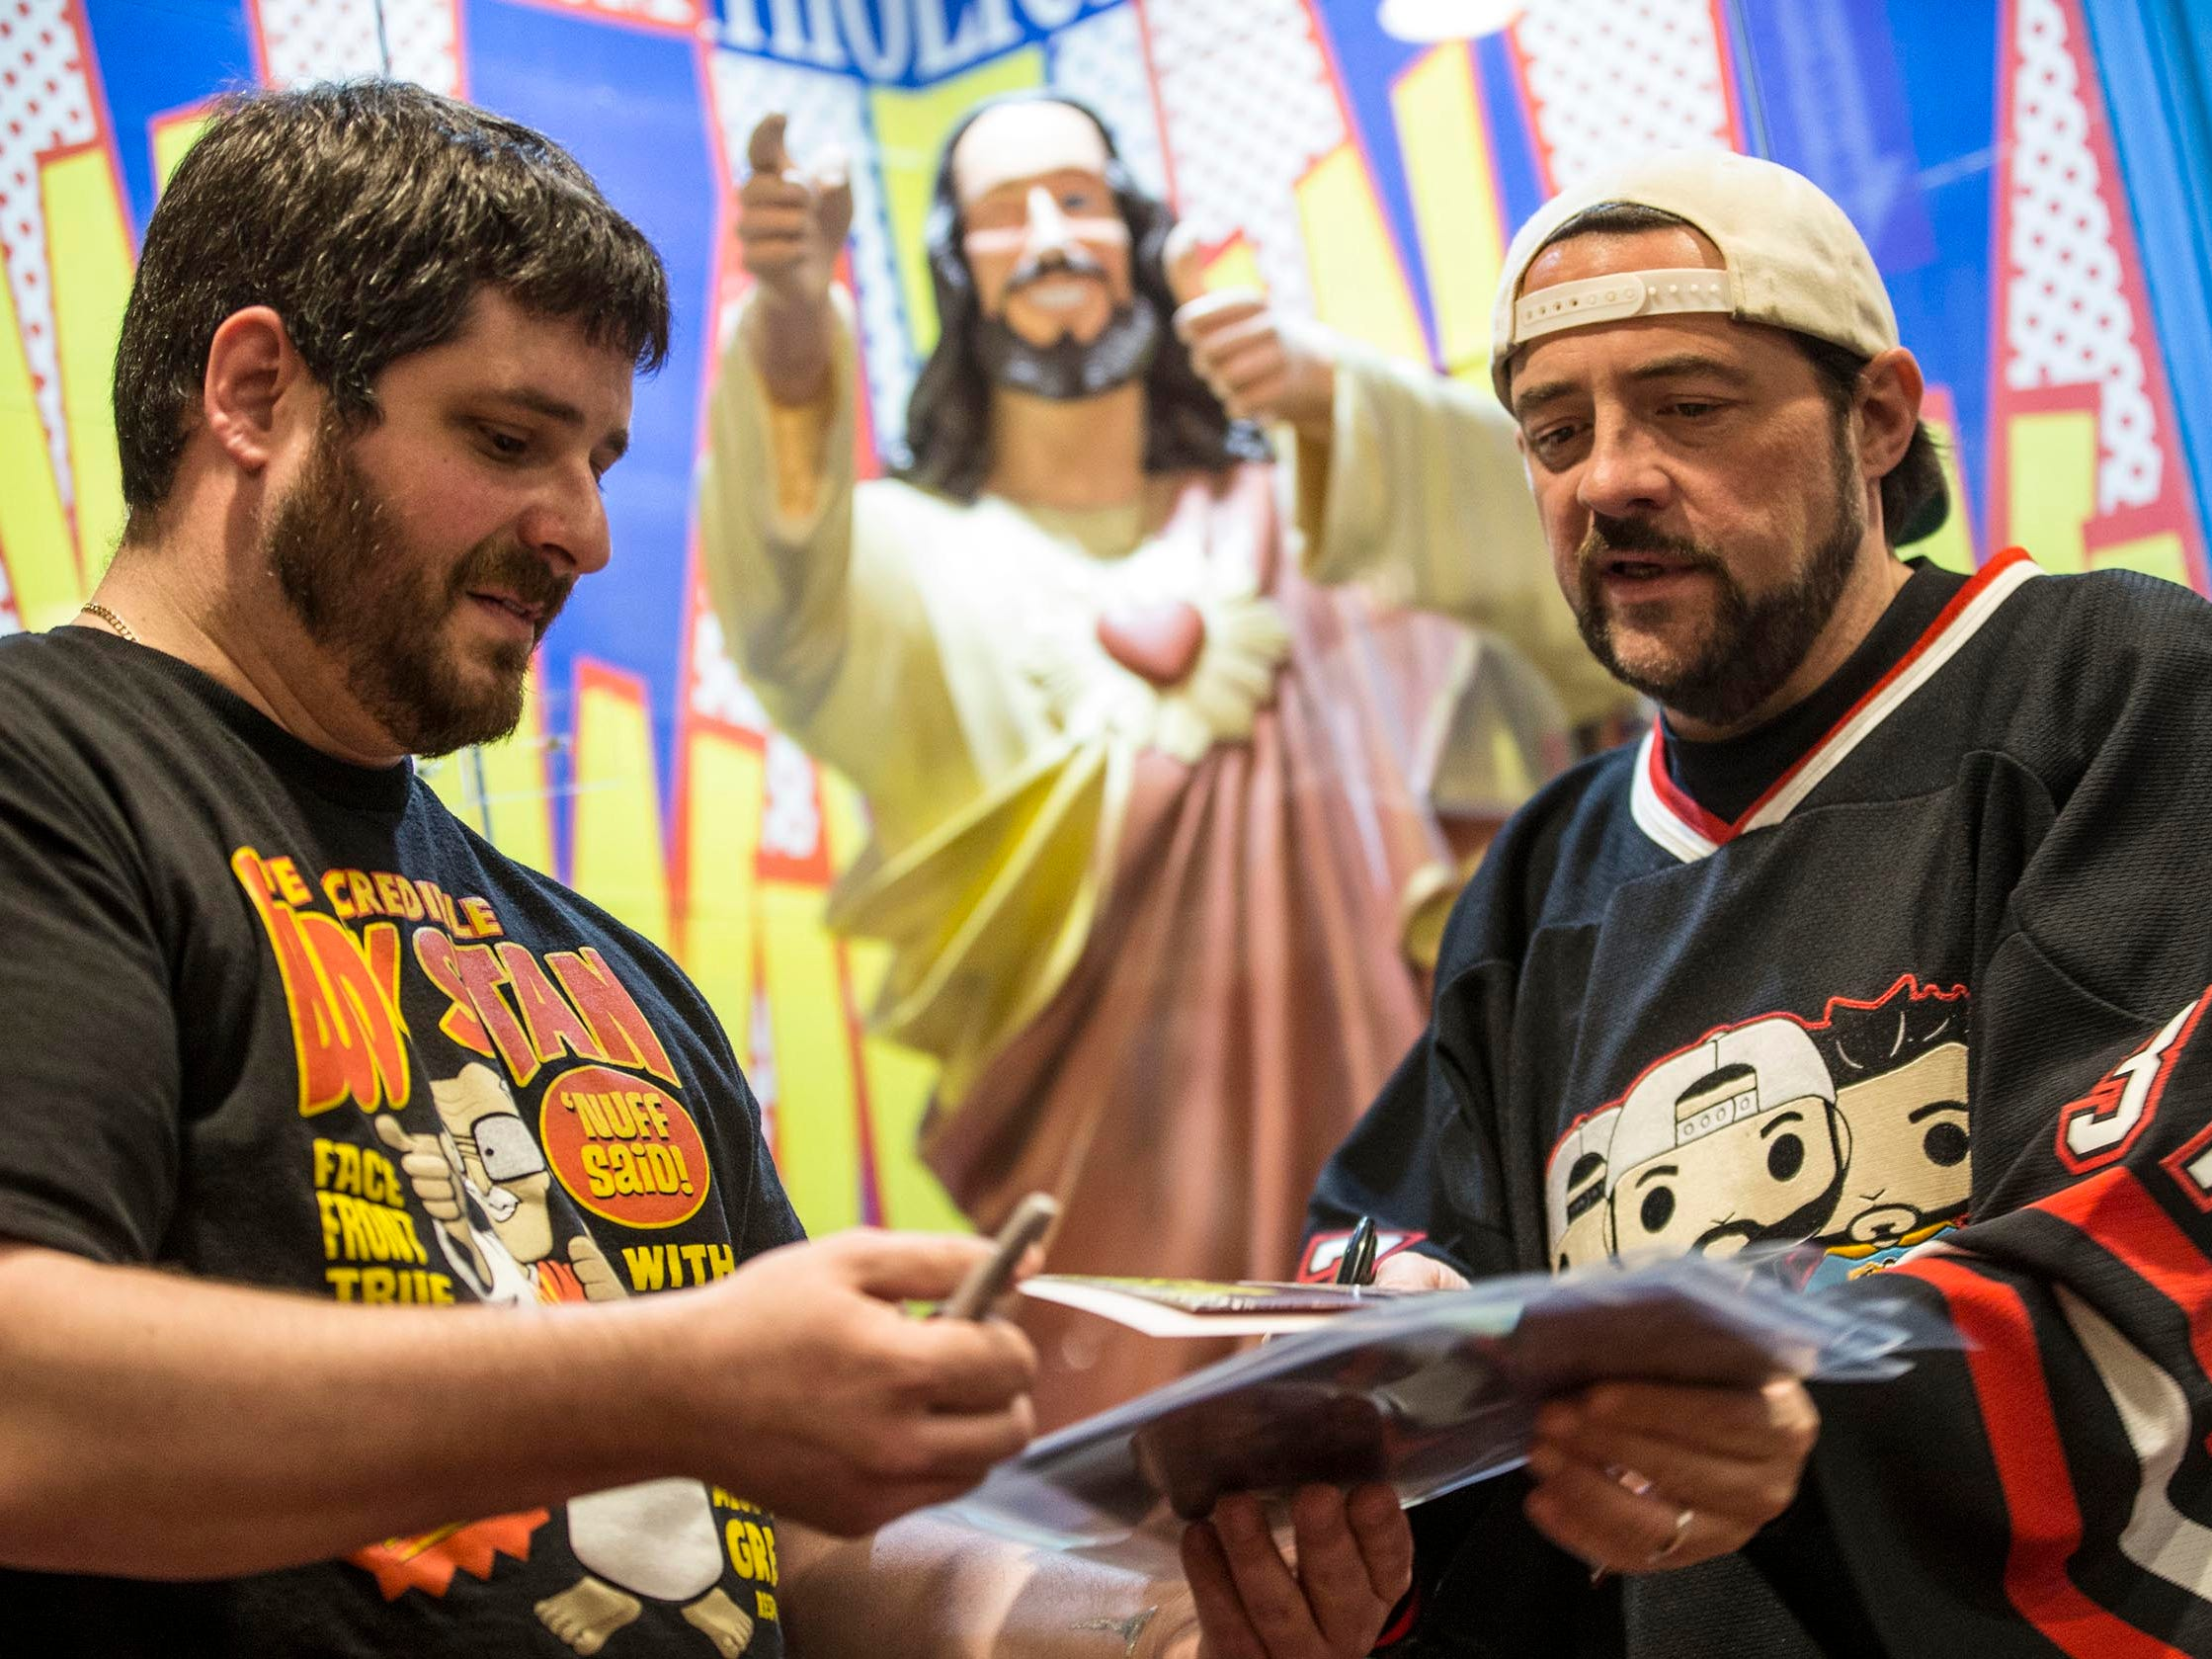 New Jersey native, filmmaker, Kevin Smith signs autographs for fans at his comic book store Jay and Silent Bob's Secret Stash. Jeff Lucarelli of Harrisburg, PA gets merchandise signed by Smith.  Red Bank, NJ on Saturday, May 5, 2018